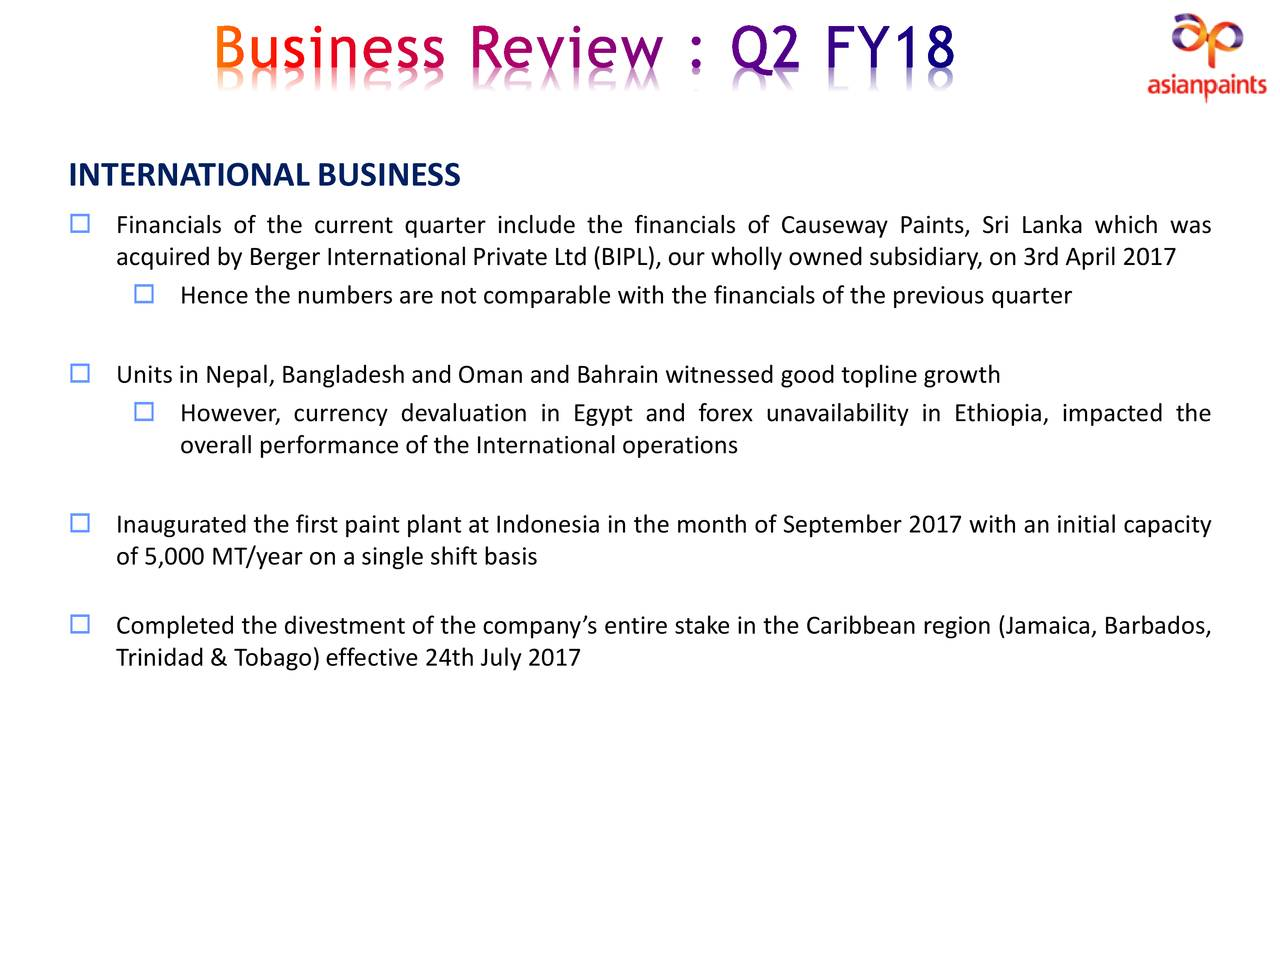 Business Case Studies, Going Global Case Study, Asian Paints India Ltd,The Global Strategies